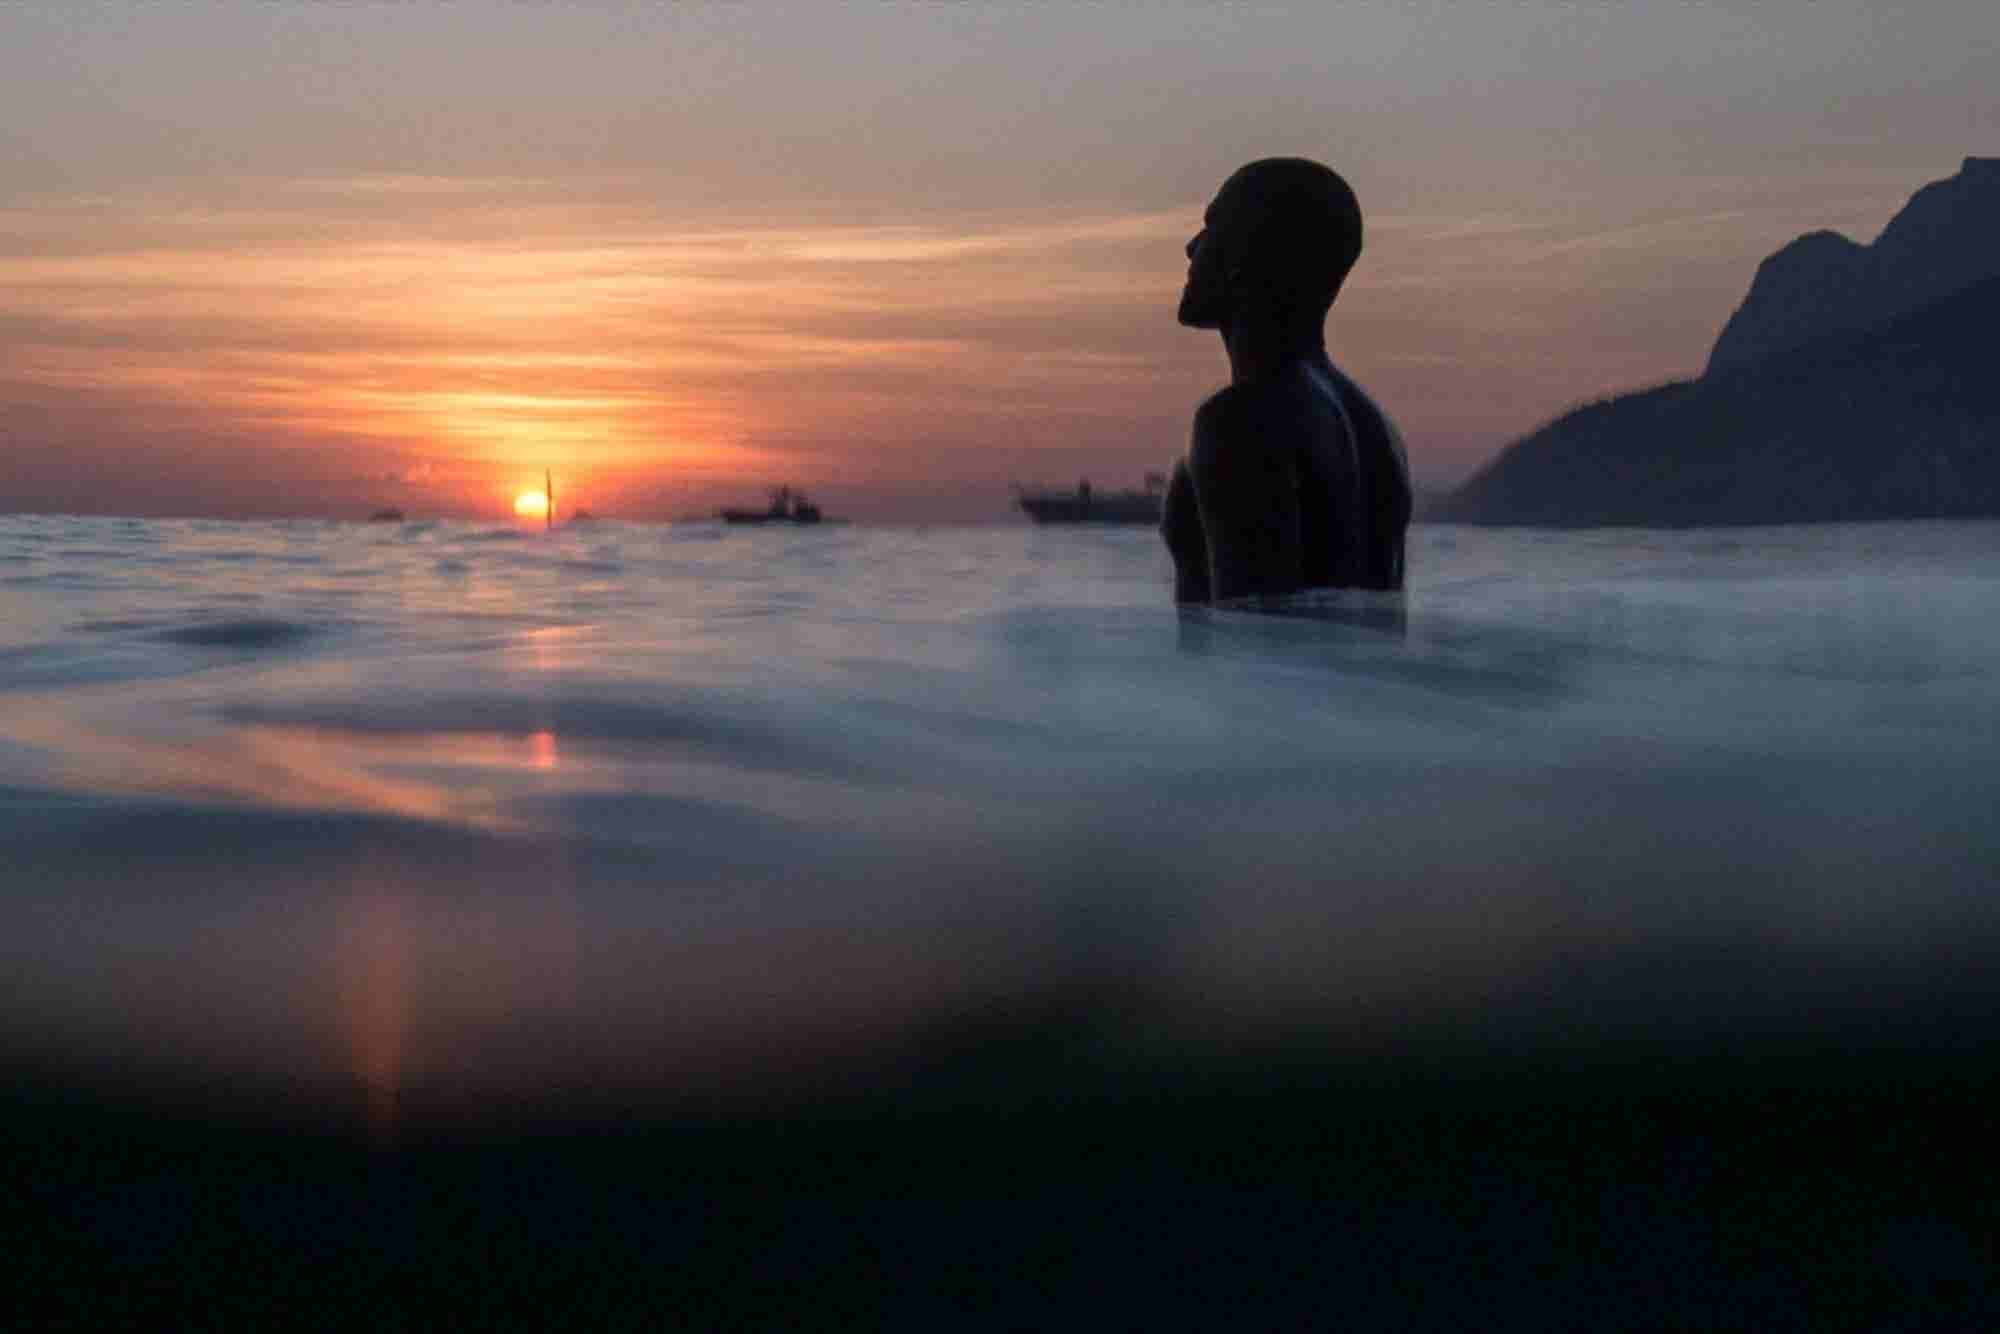 From Bikinis to Business Suits: An Entrepreneur's Crazy Journey to the Beaches of Brazil